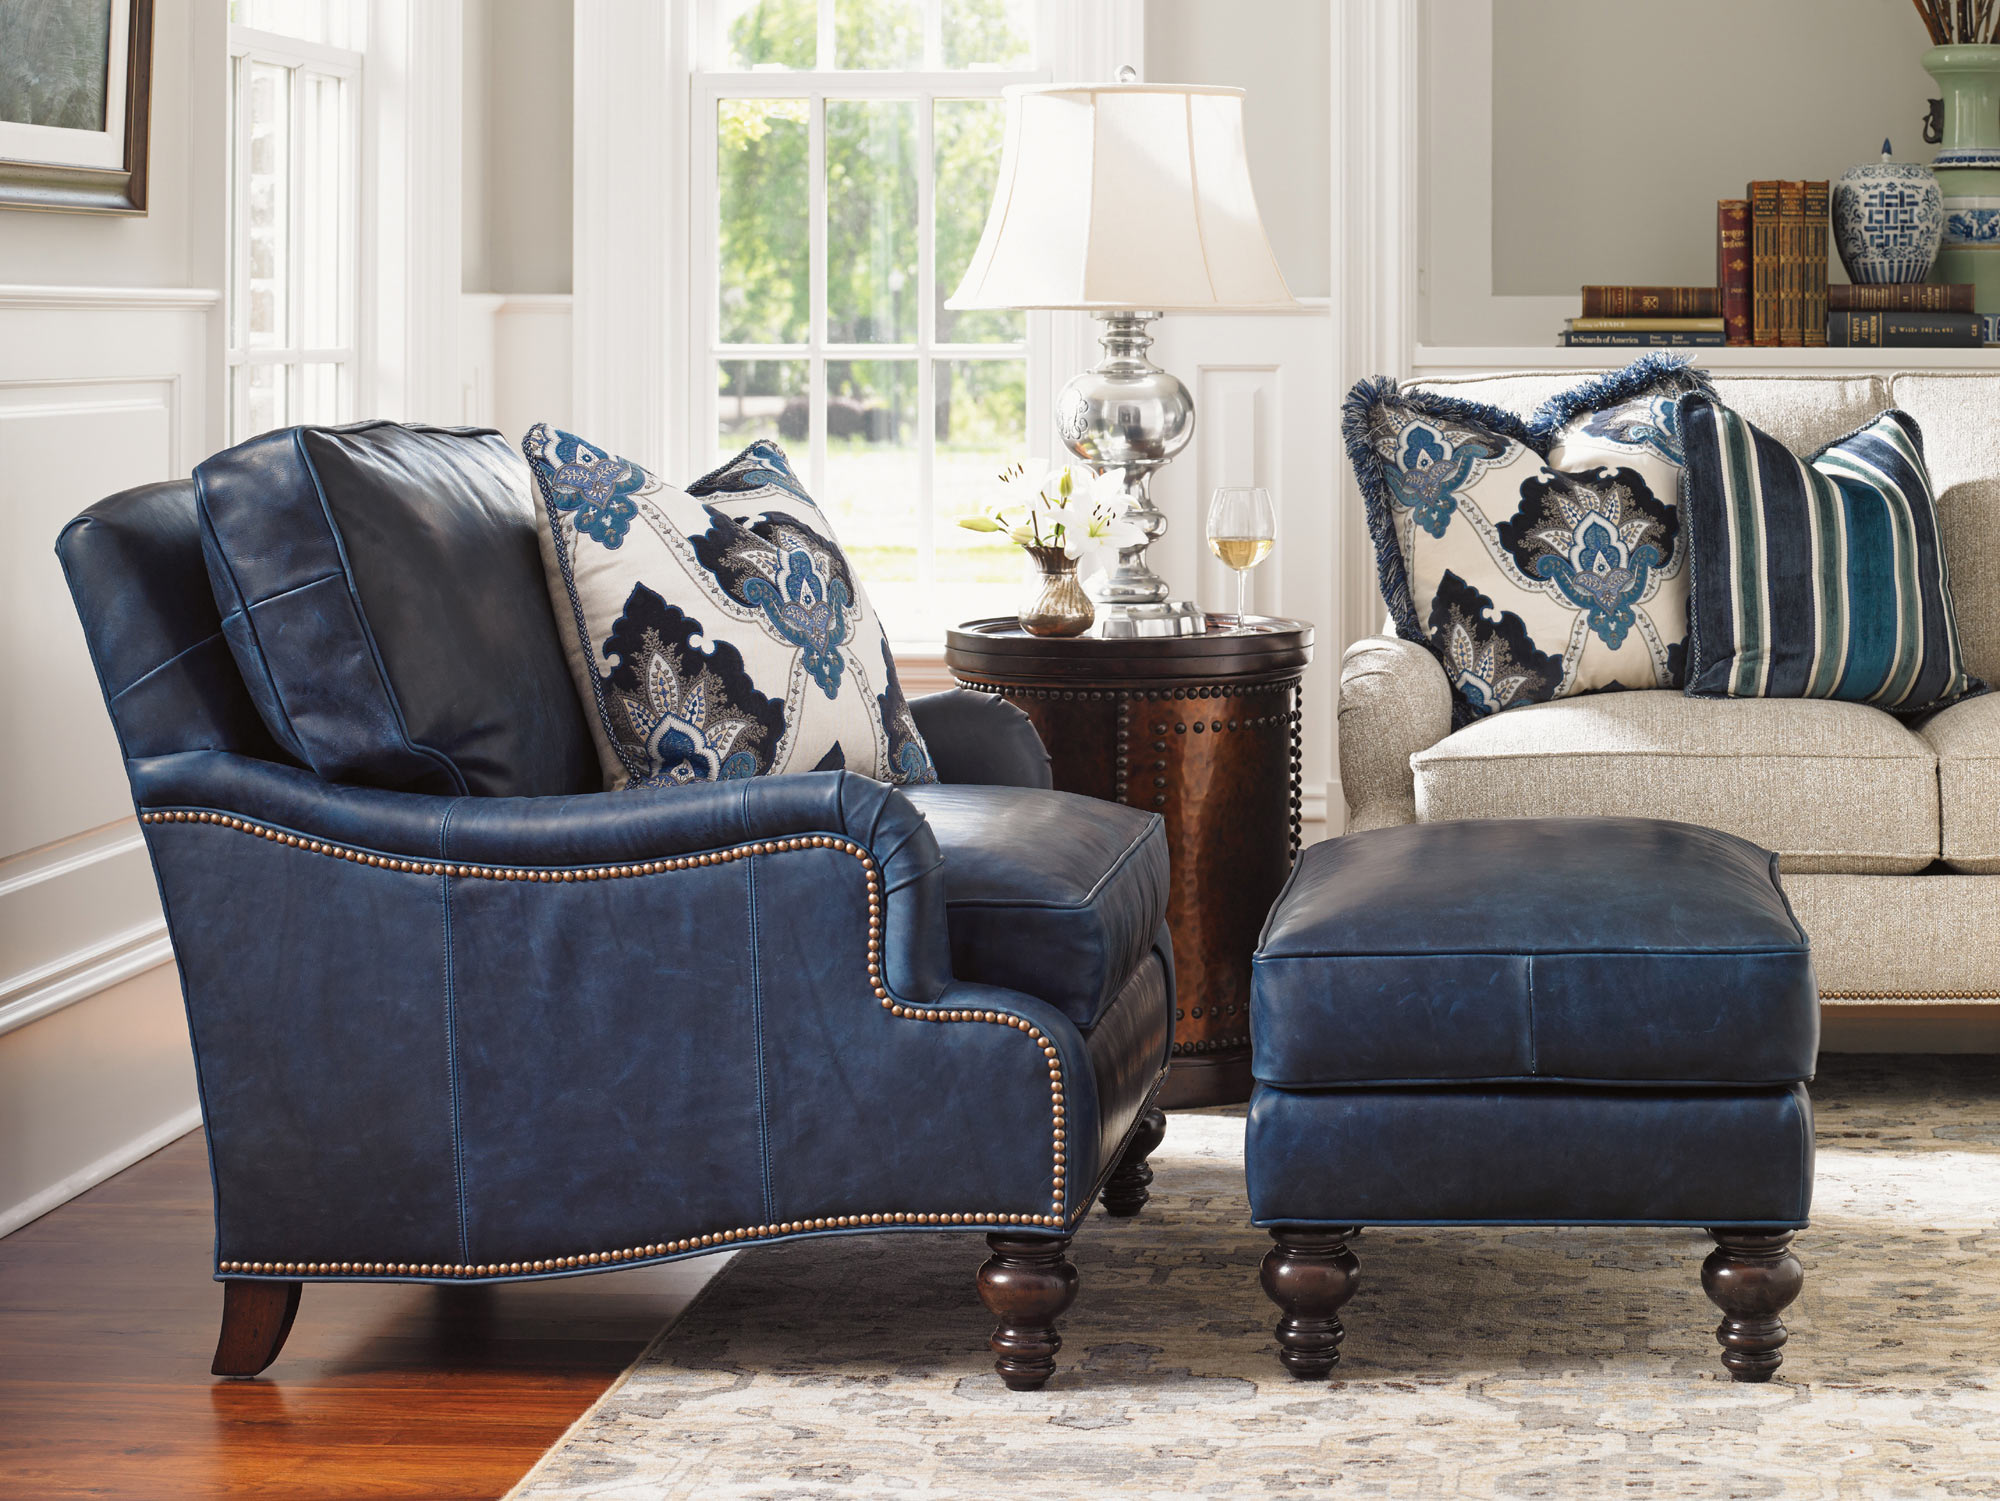 Sitting Pretty Sofas Overstuffed Sofa Slipcovers Amelia Leather Chair Lexington Home Gallery Stores